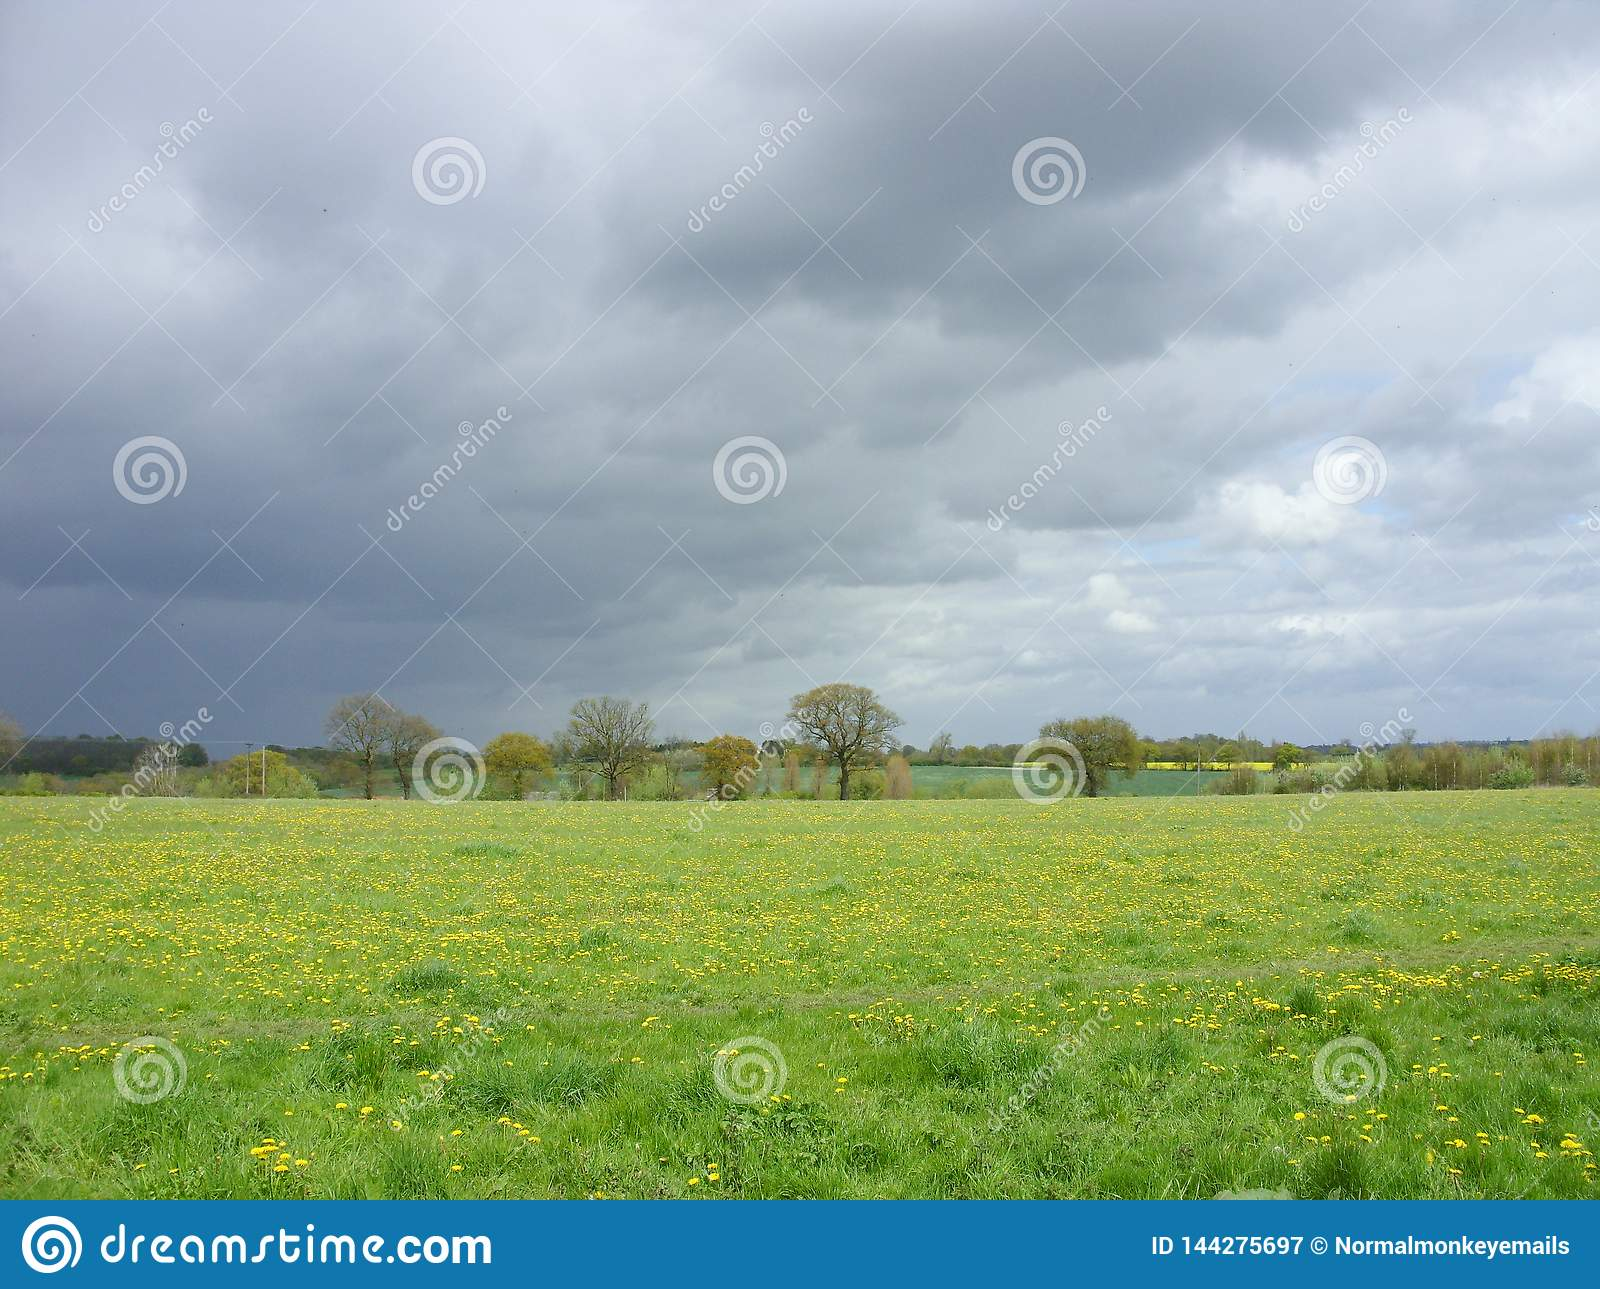 Stormy skies - bad weather a-coming